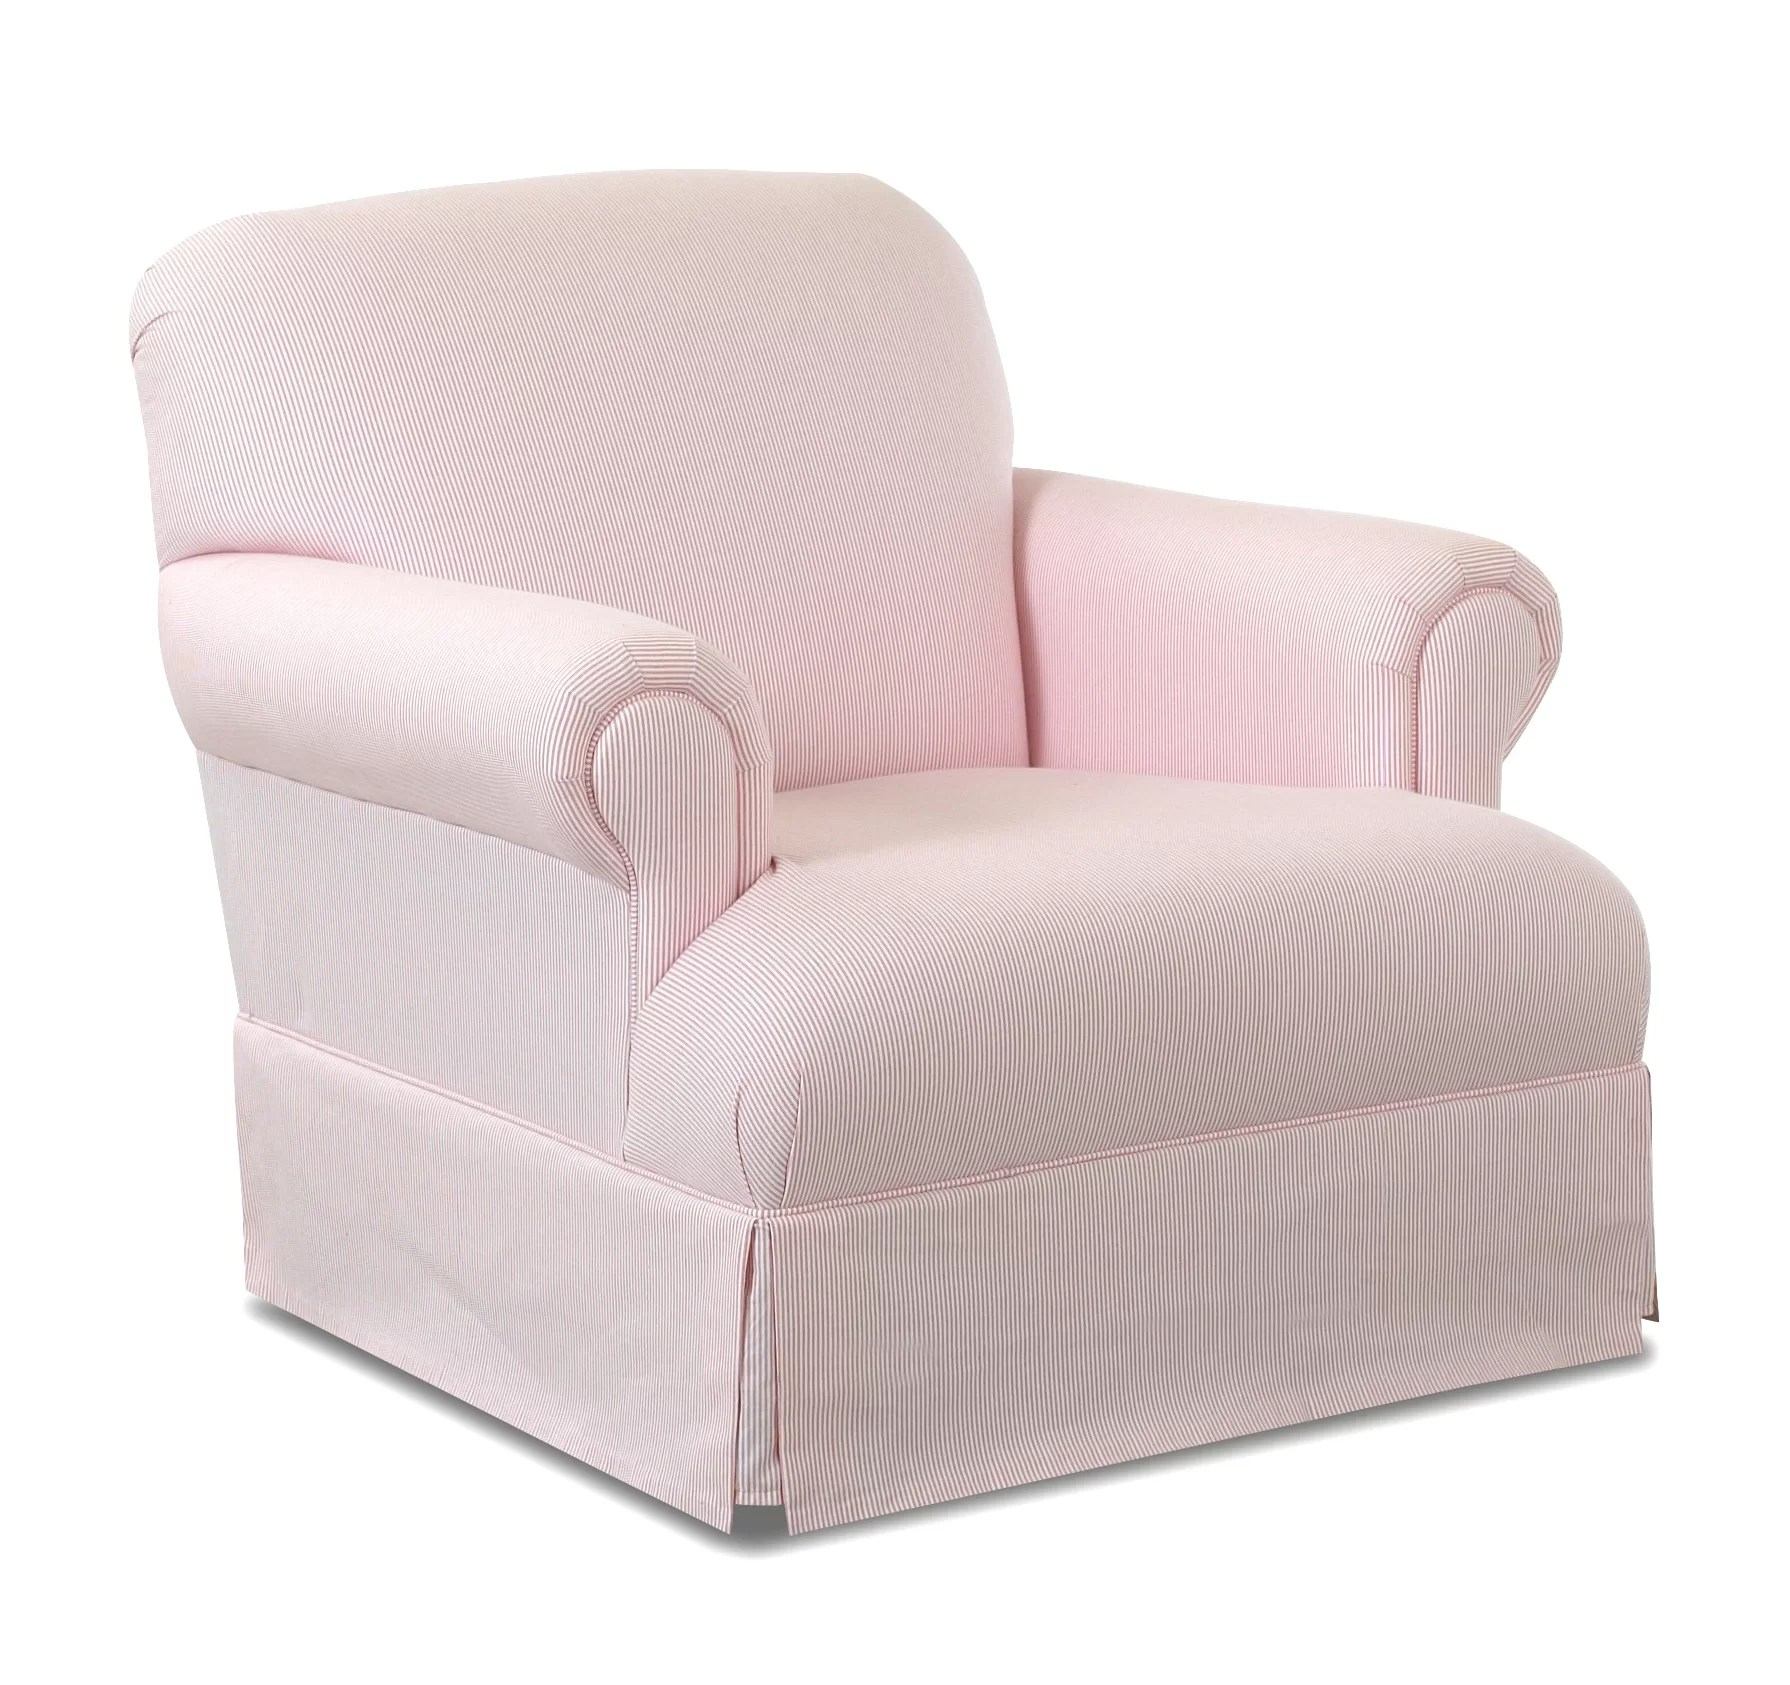 glider chair for nursery waterproof garden covers ten june help i need advice